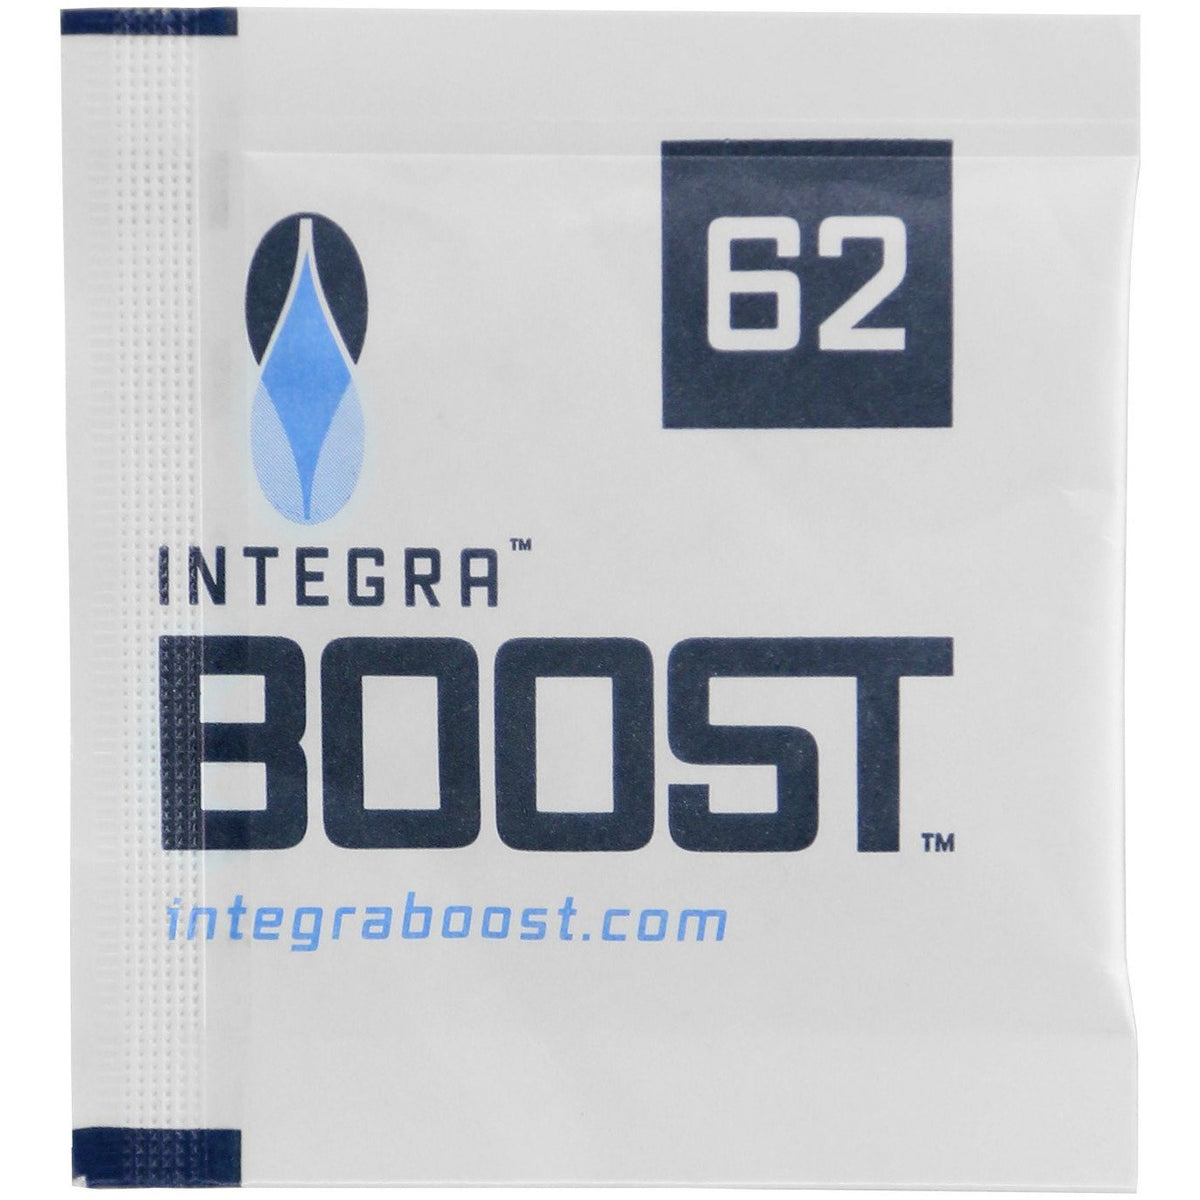 Integra Boost Integra Boost Control 62% Humidity 8 Gram 144 Pack